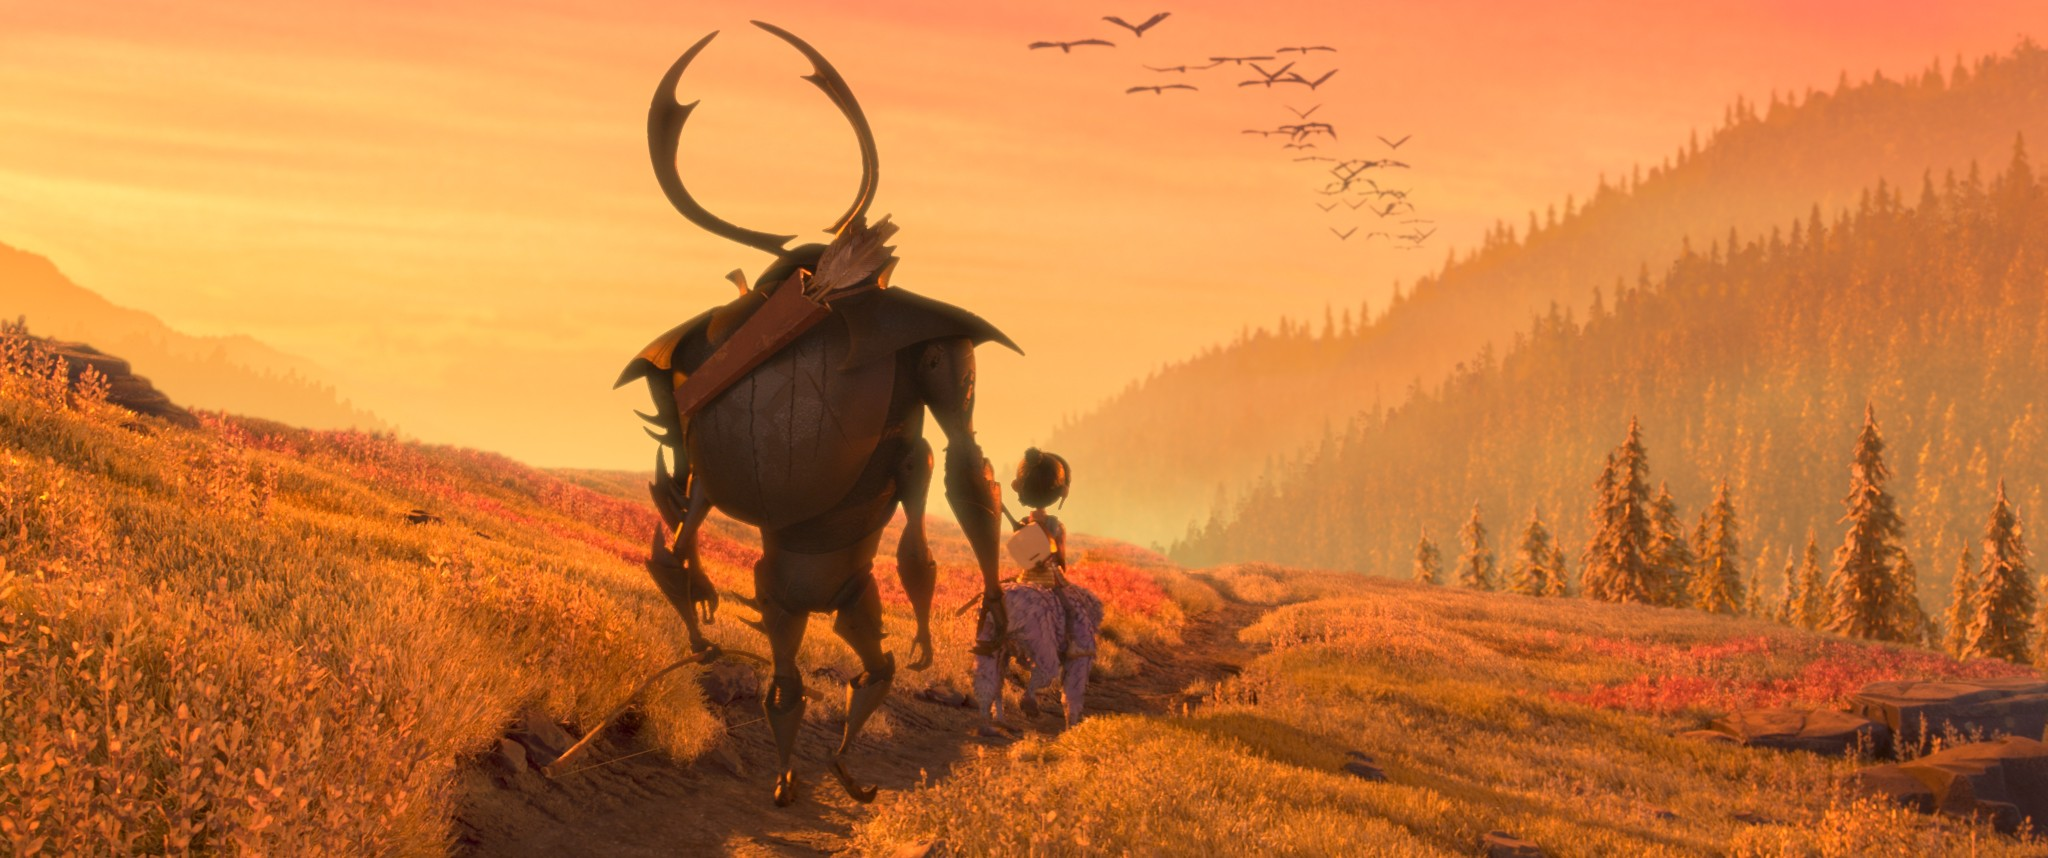 9. 'Kubo and the Two Strings' (2016)